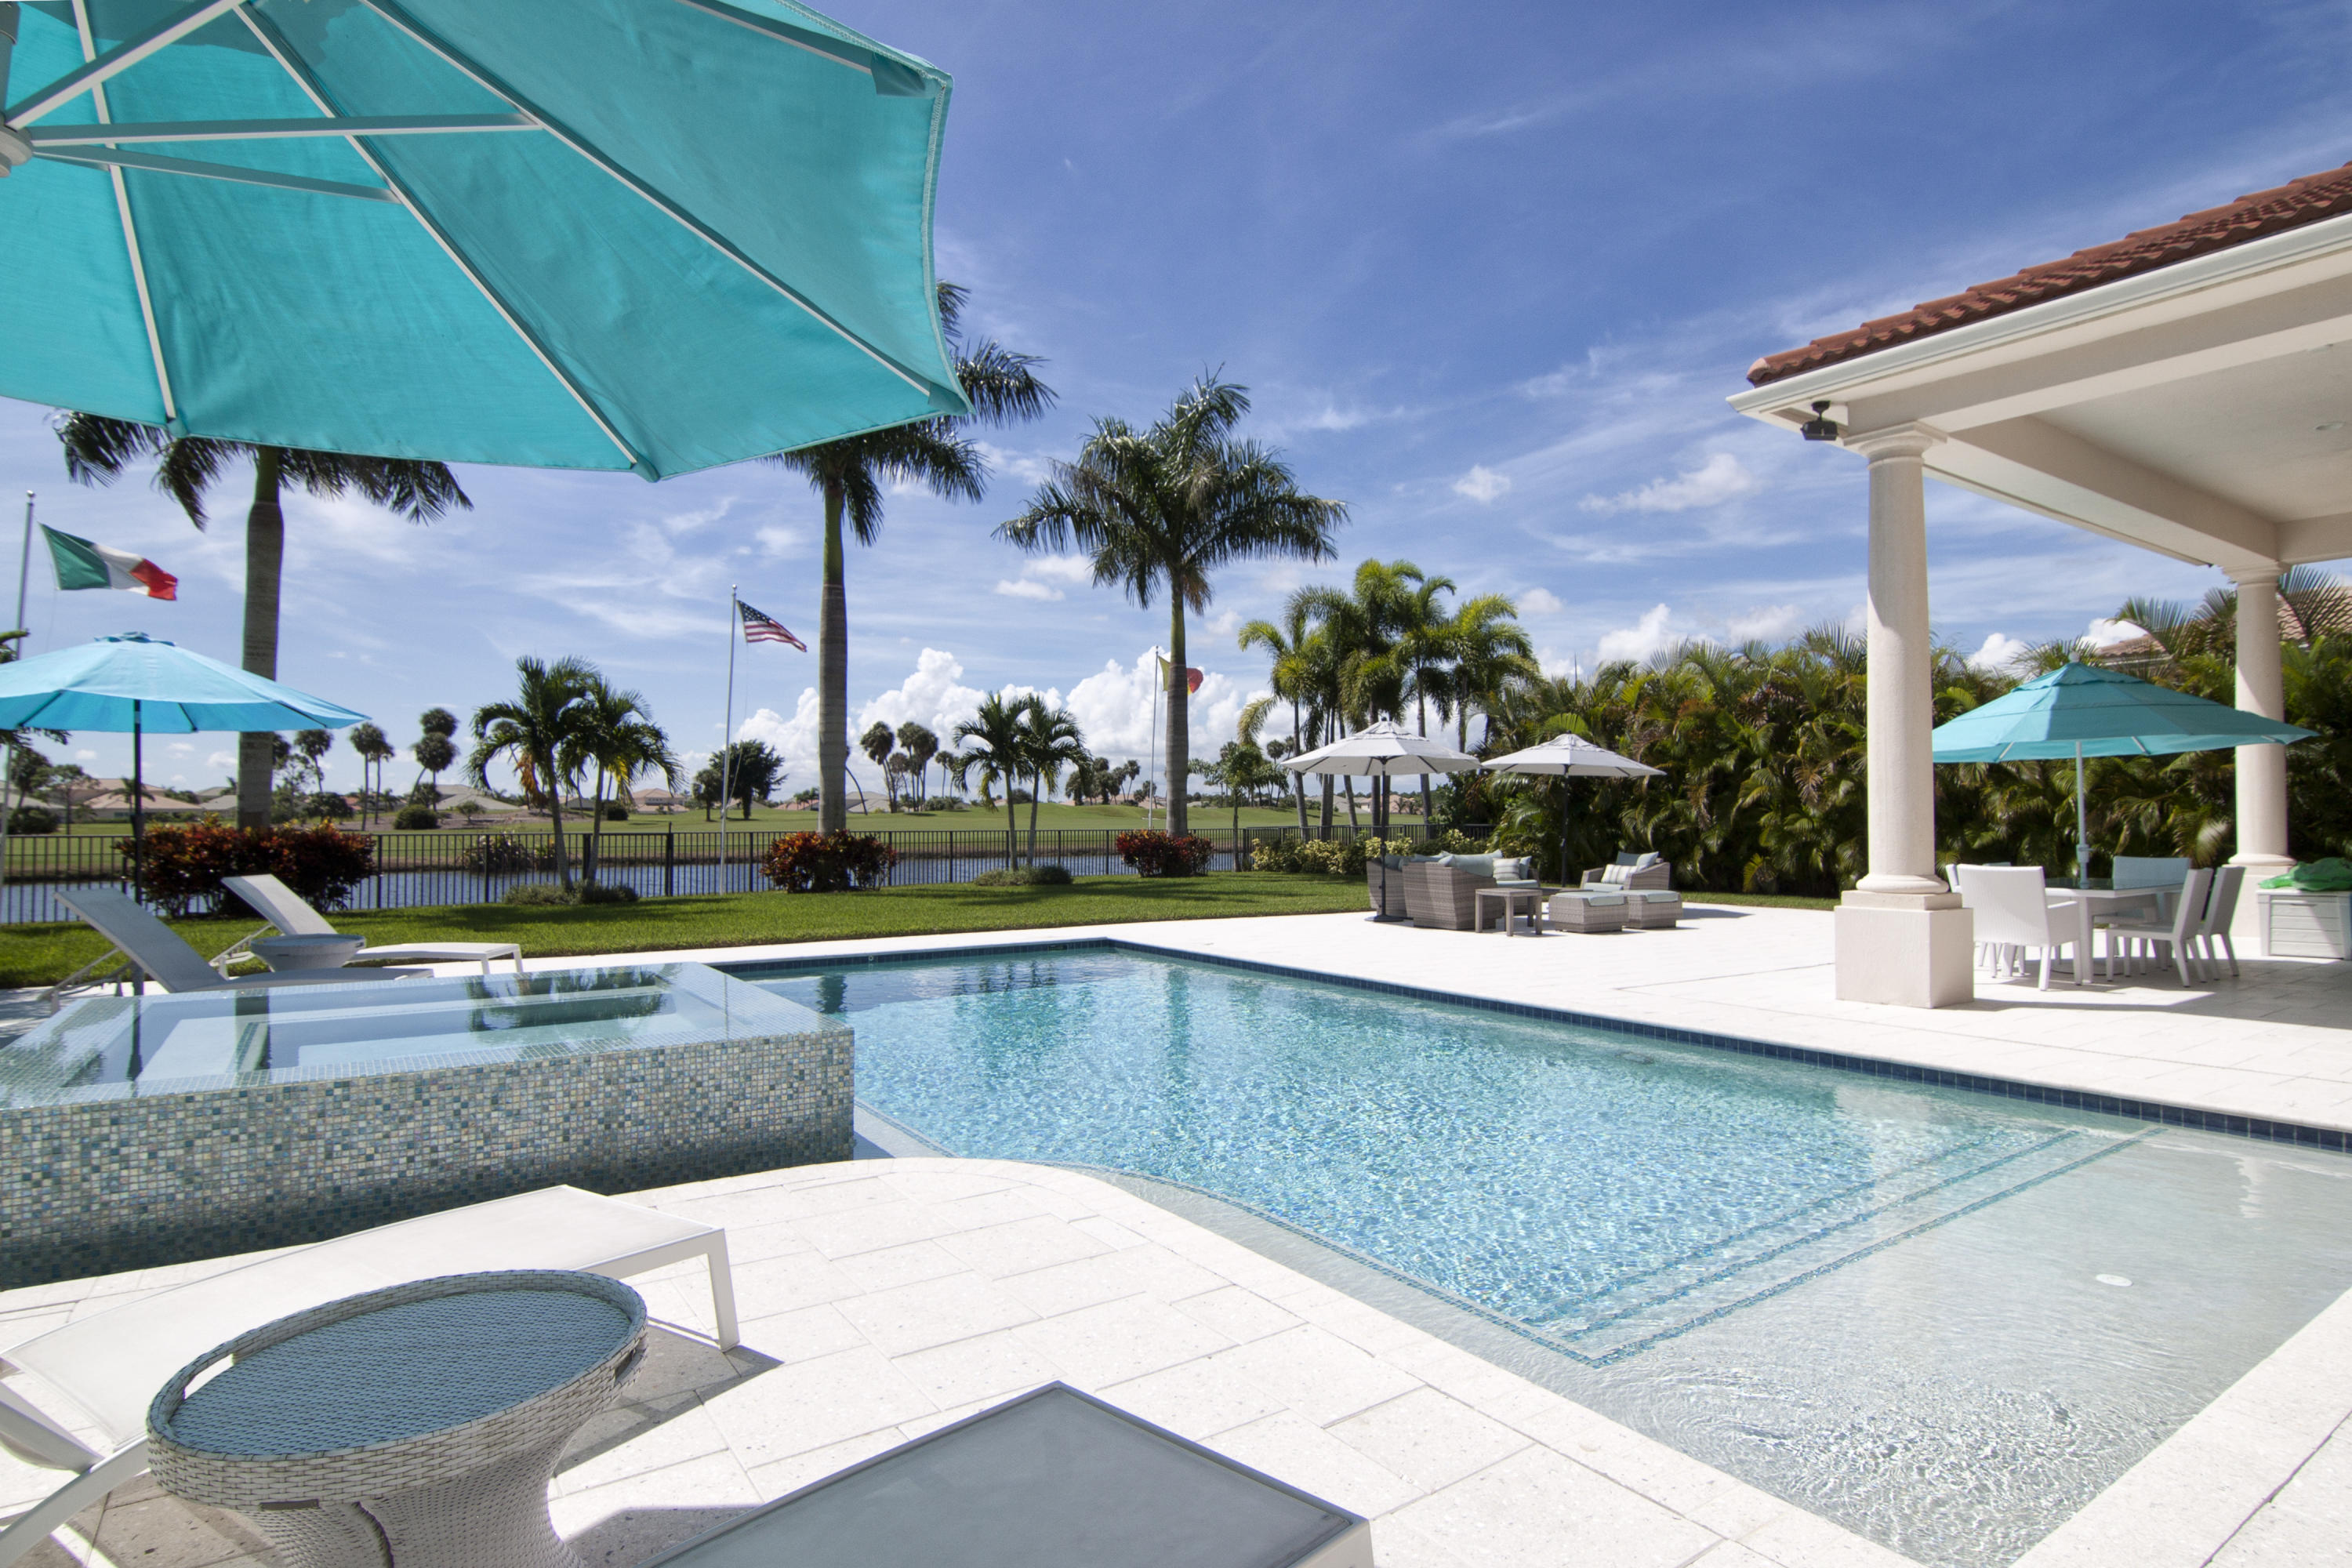 New Home for sale at 134 Elena Court in Jupiter